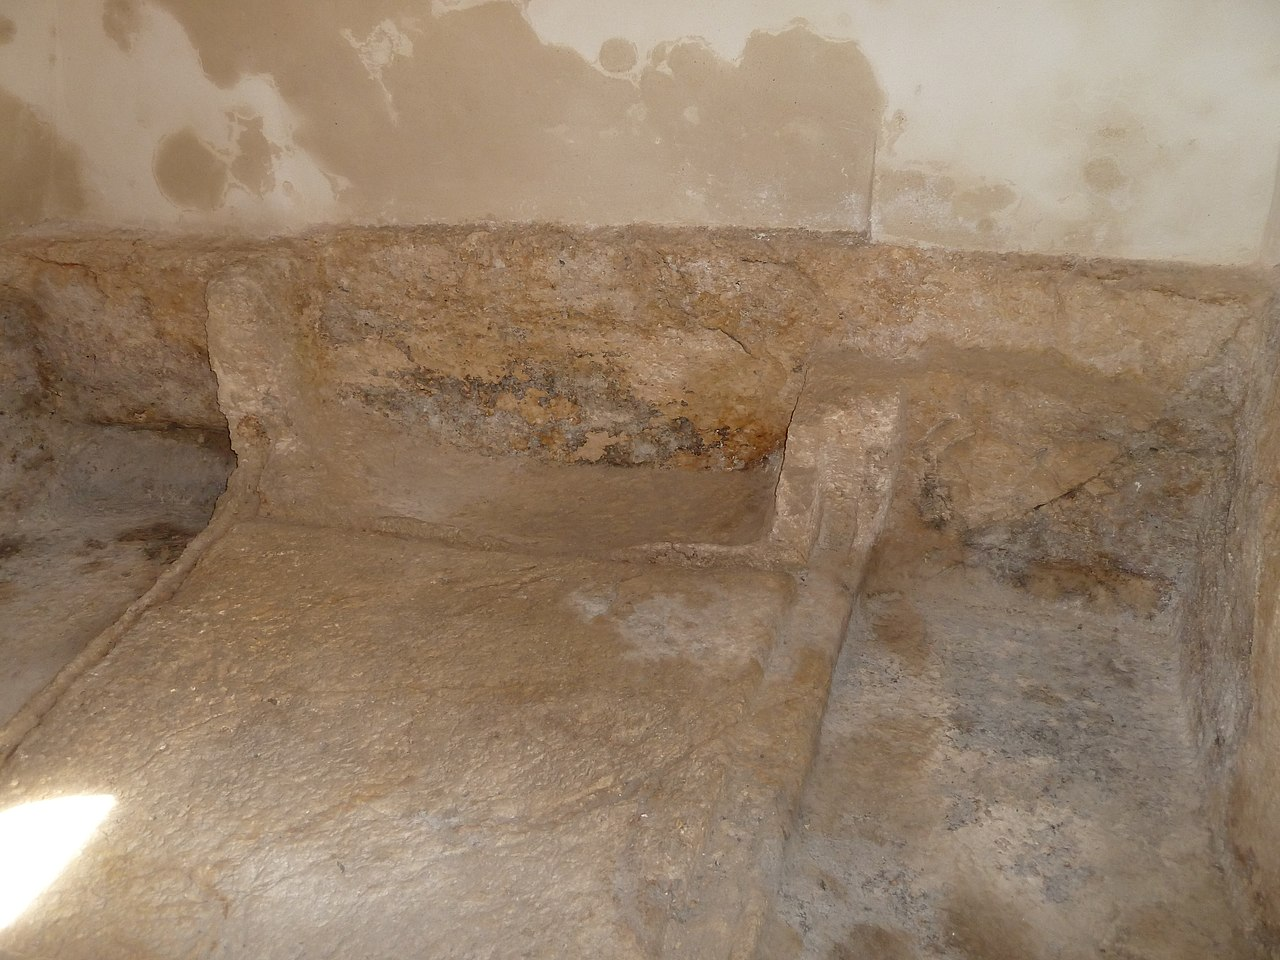 file:east jerusalem - the garden tomb - interior of the tomb